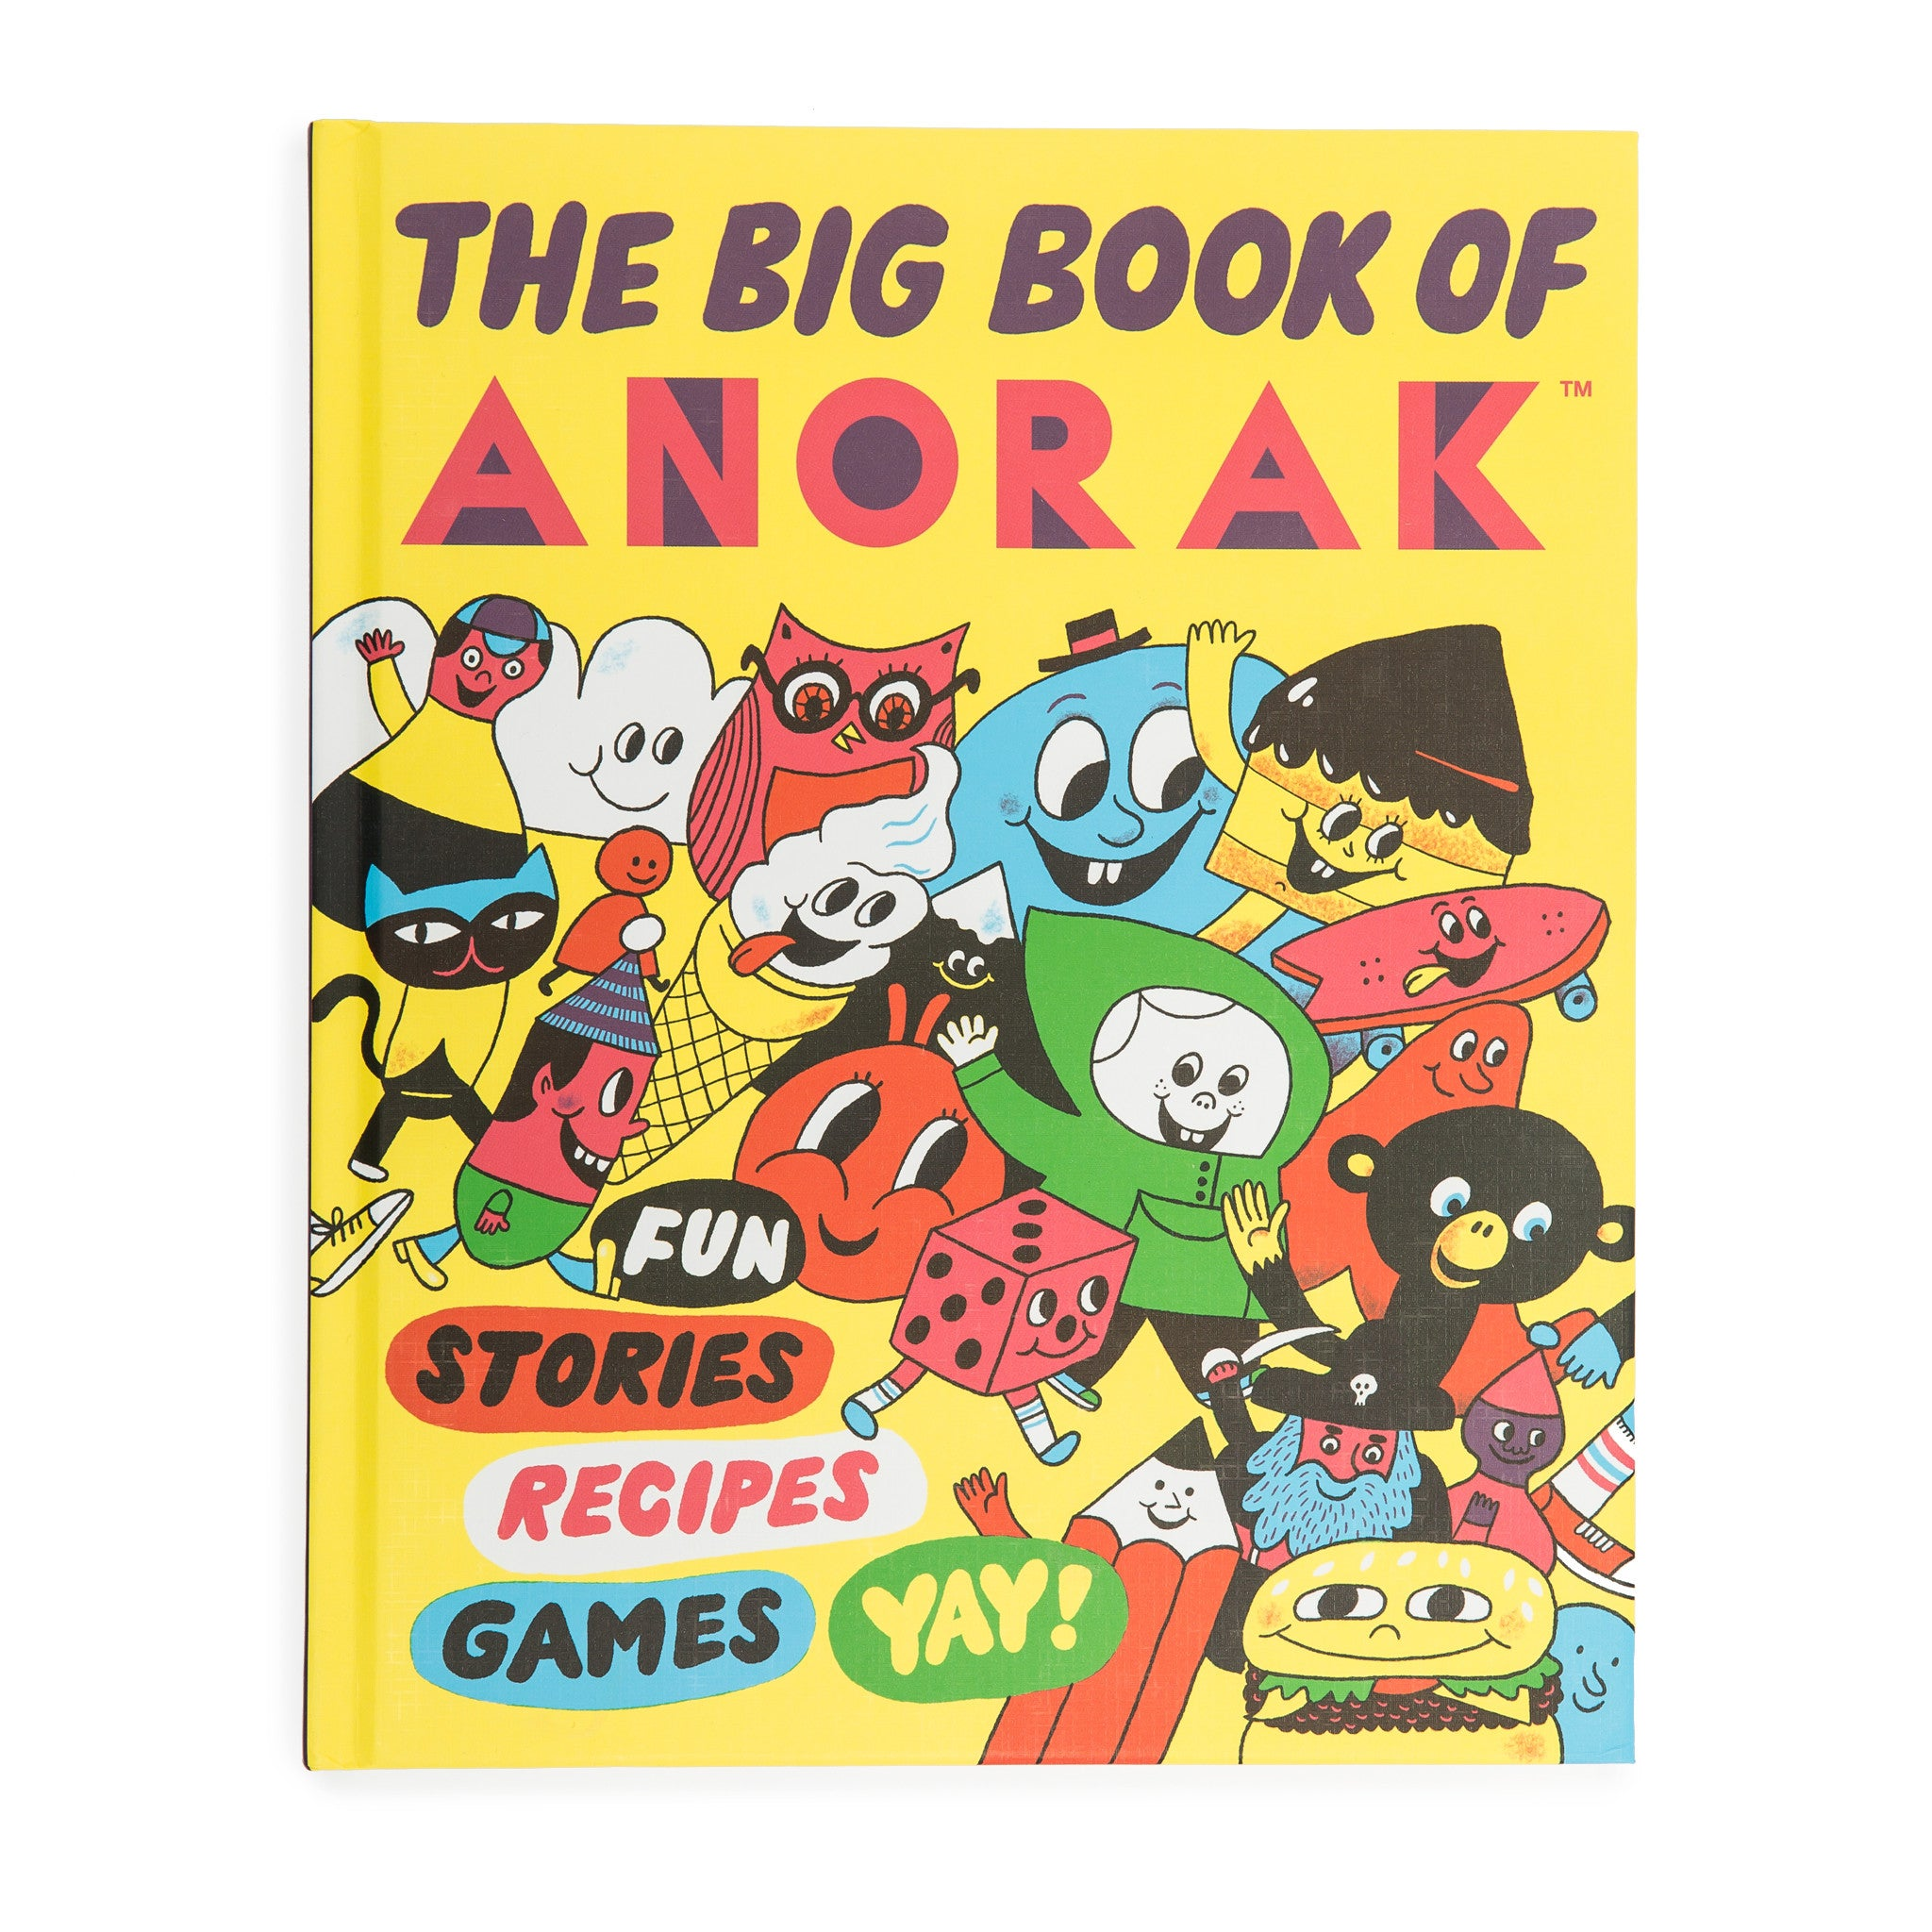 The Big Book of Anorak